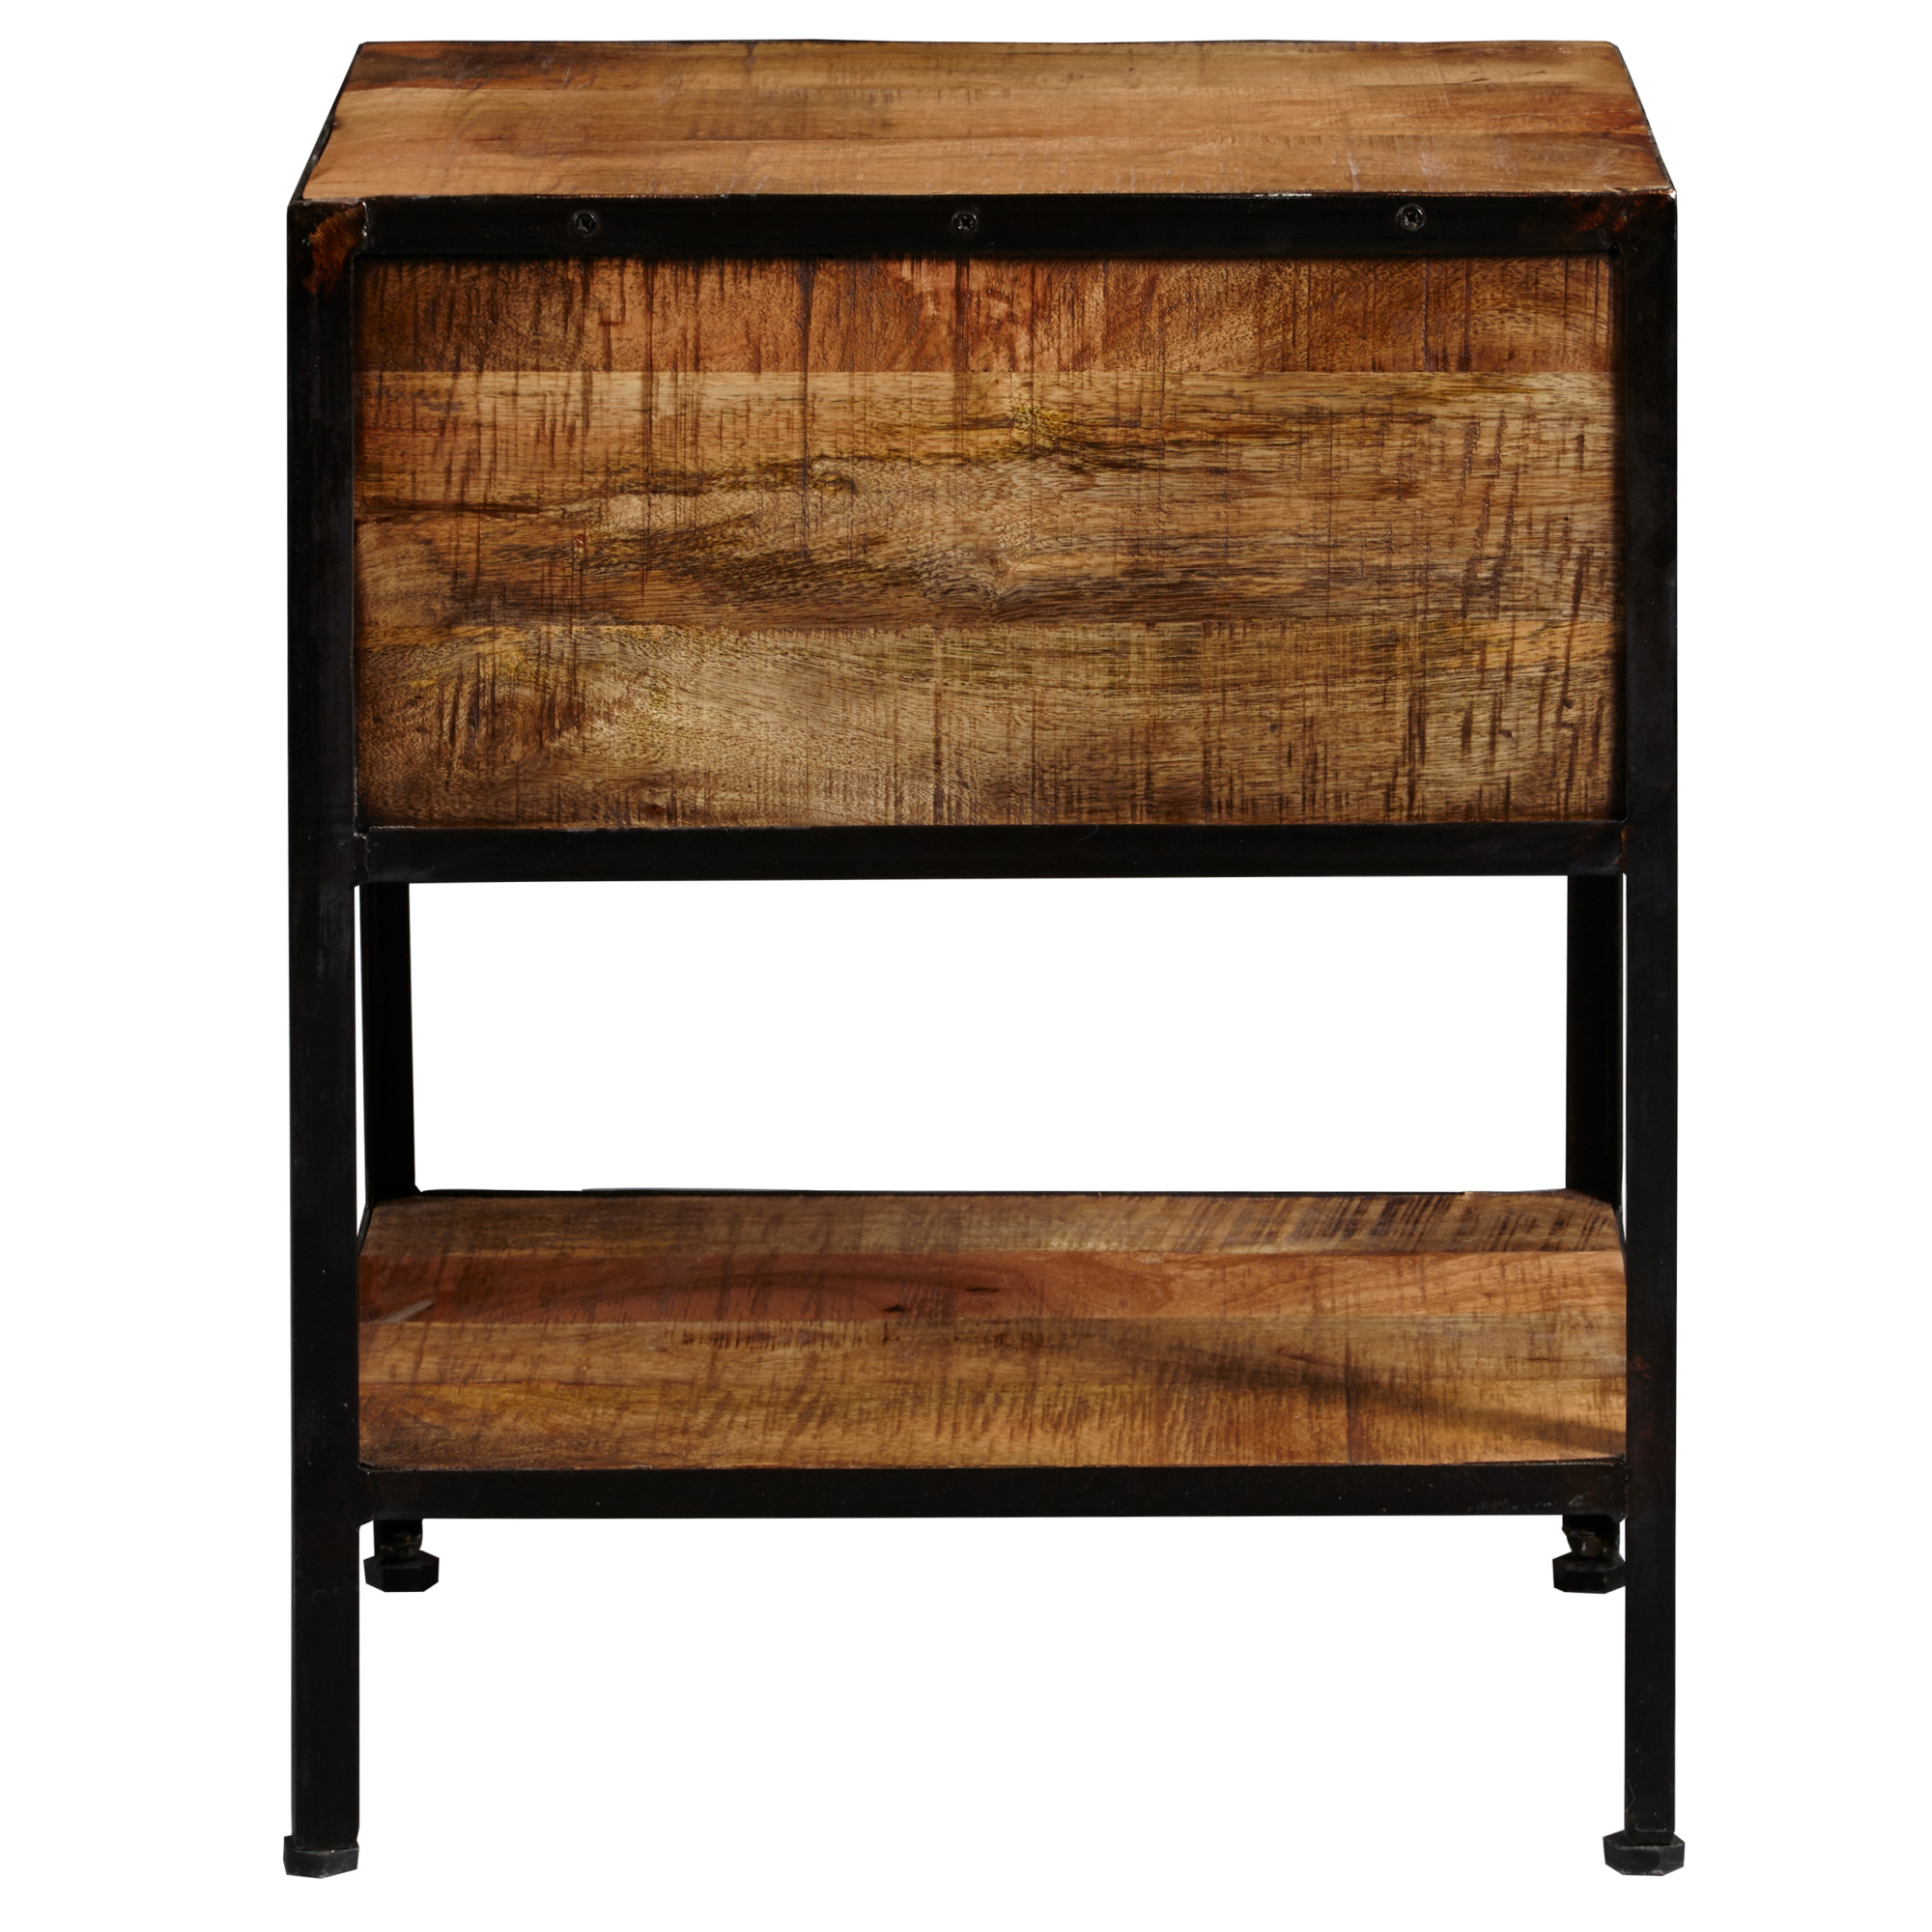 Astounding Details About Delacora Hm Ds D204 208 18 Wide Metal And Wood End Table Distressed Honey Ibusinesslaw Wood Chair Design Ideas Ibusinesslaworg